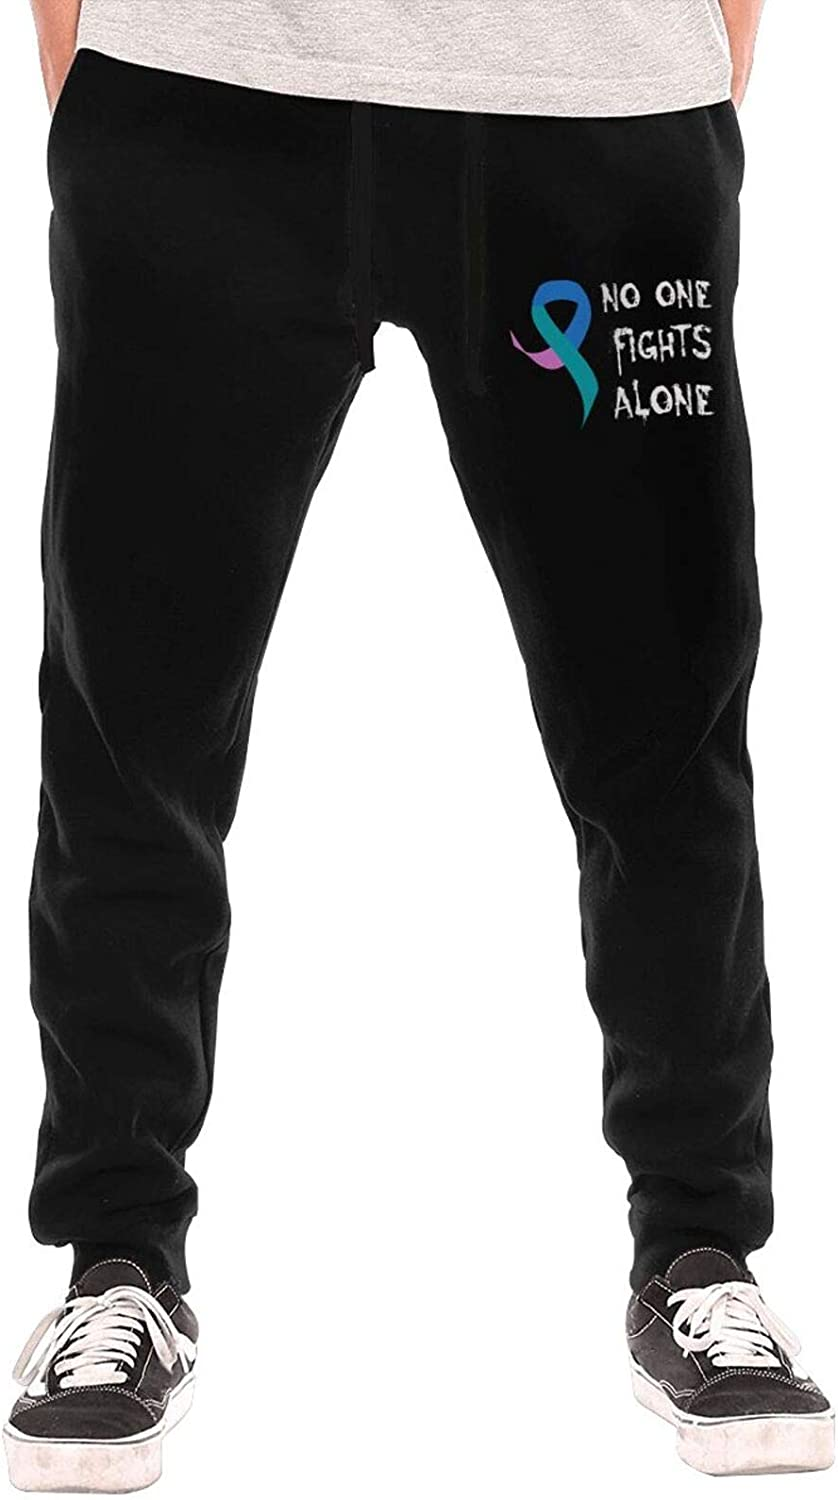 Max 54% OFF No One Fights Alone Thyroid Cancer Sweatp Now on sale Jogger Men's Awareness